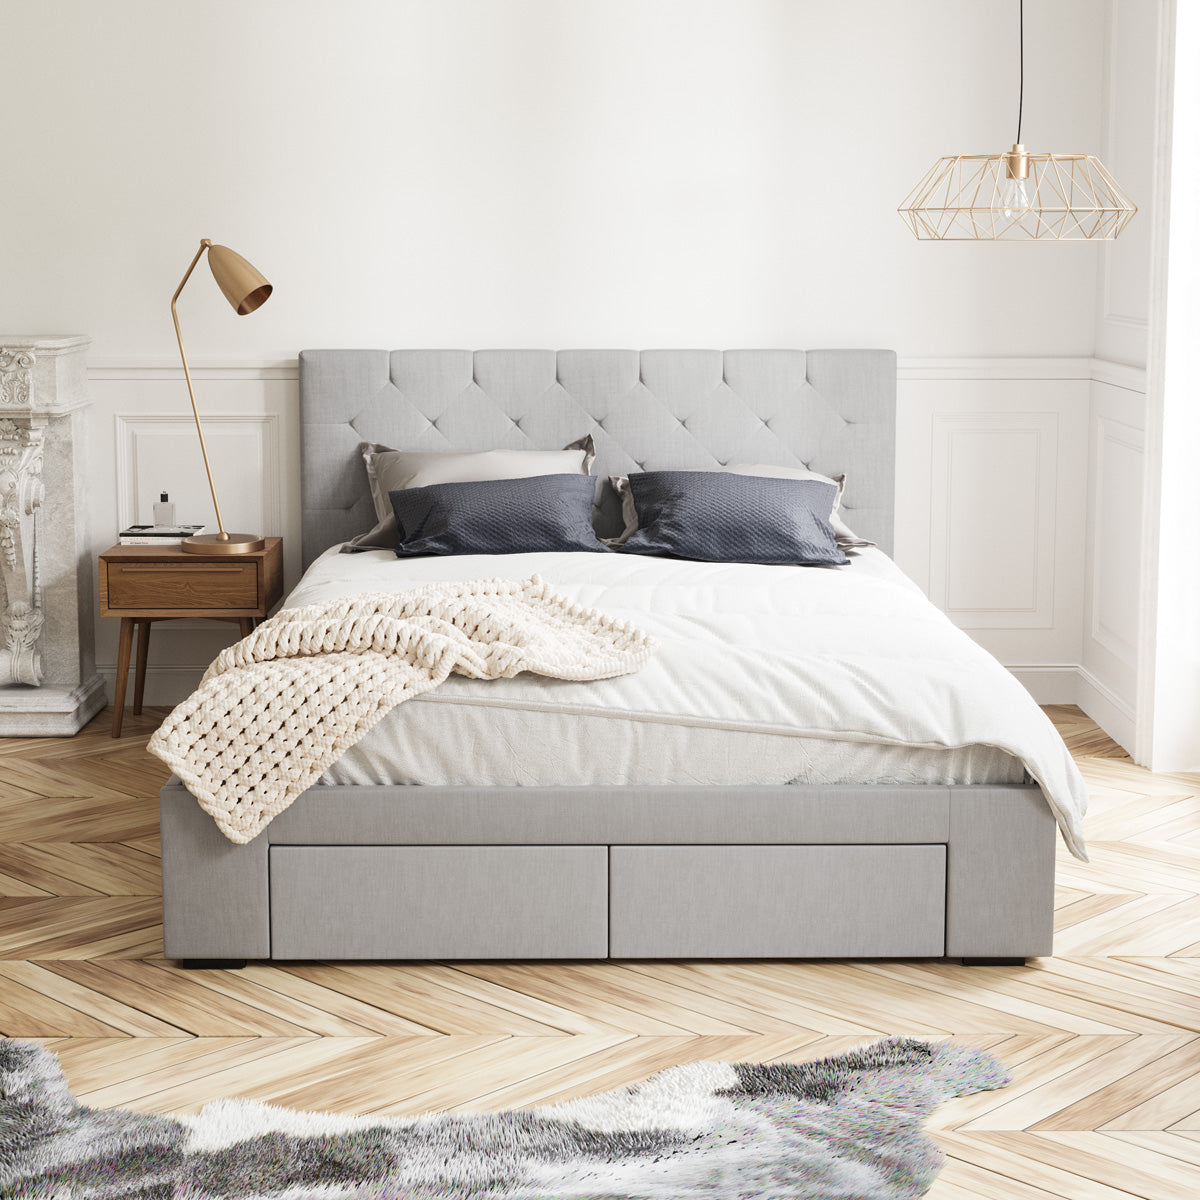 Webster Bed Frame with Four Storage Drawers (Grey Fabric)